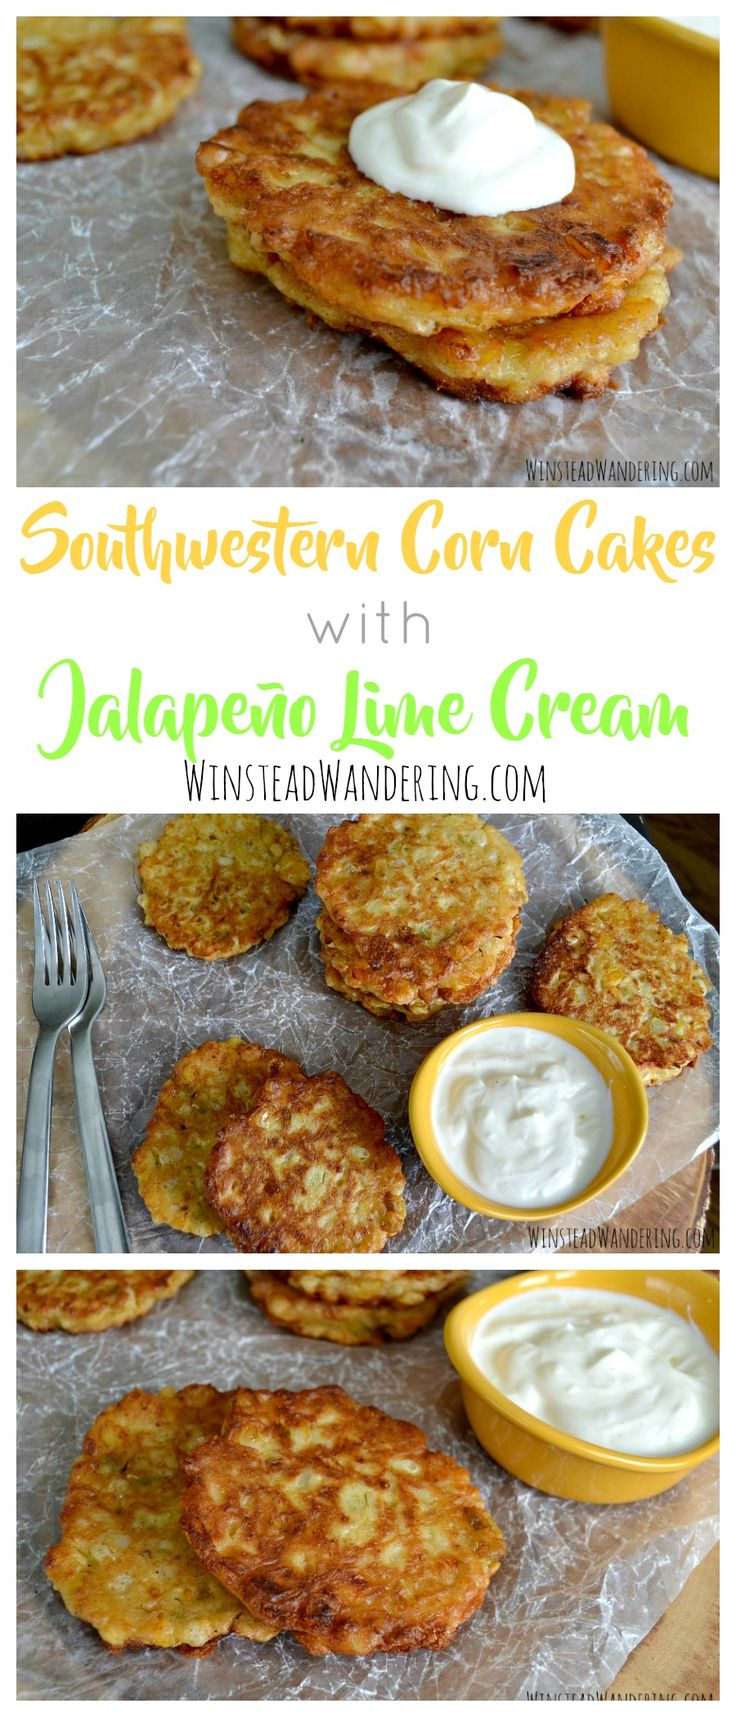 Southwestern Corn Cakes with Jalapeño Lime Cream offer perfect lightly-fried bites of sweet corn, cheese, and peppers with a slightly-spicy citrus cream.